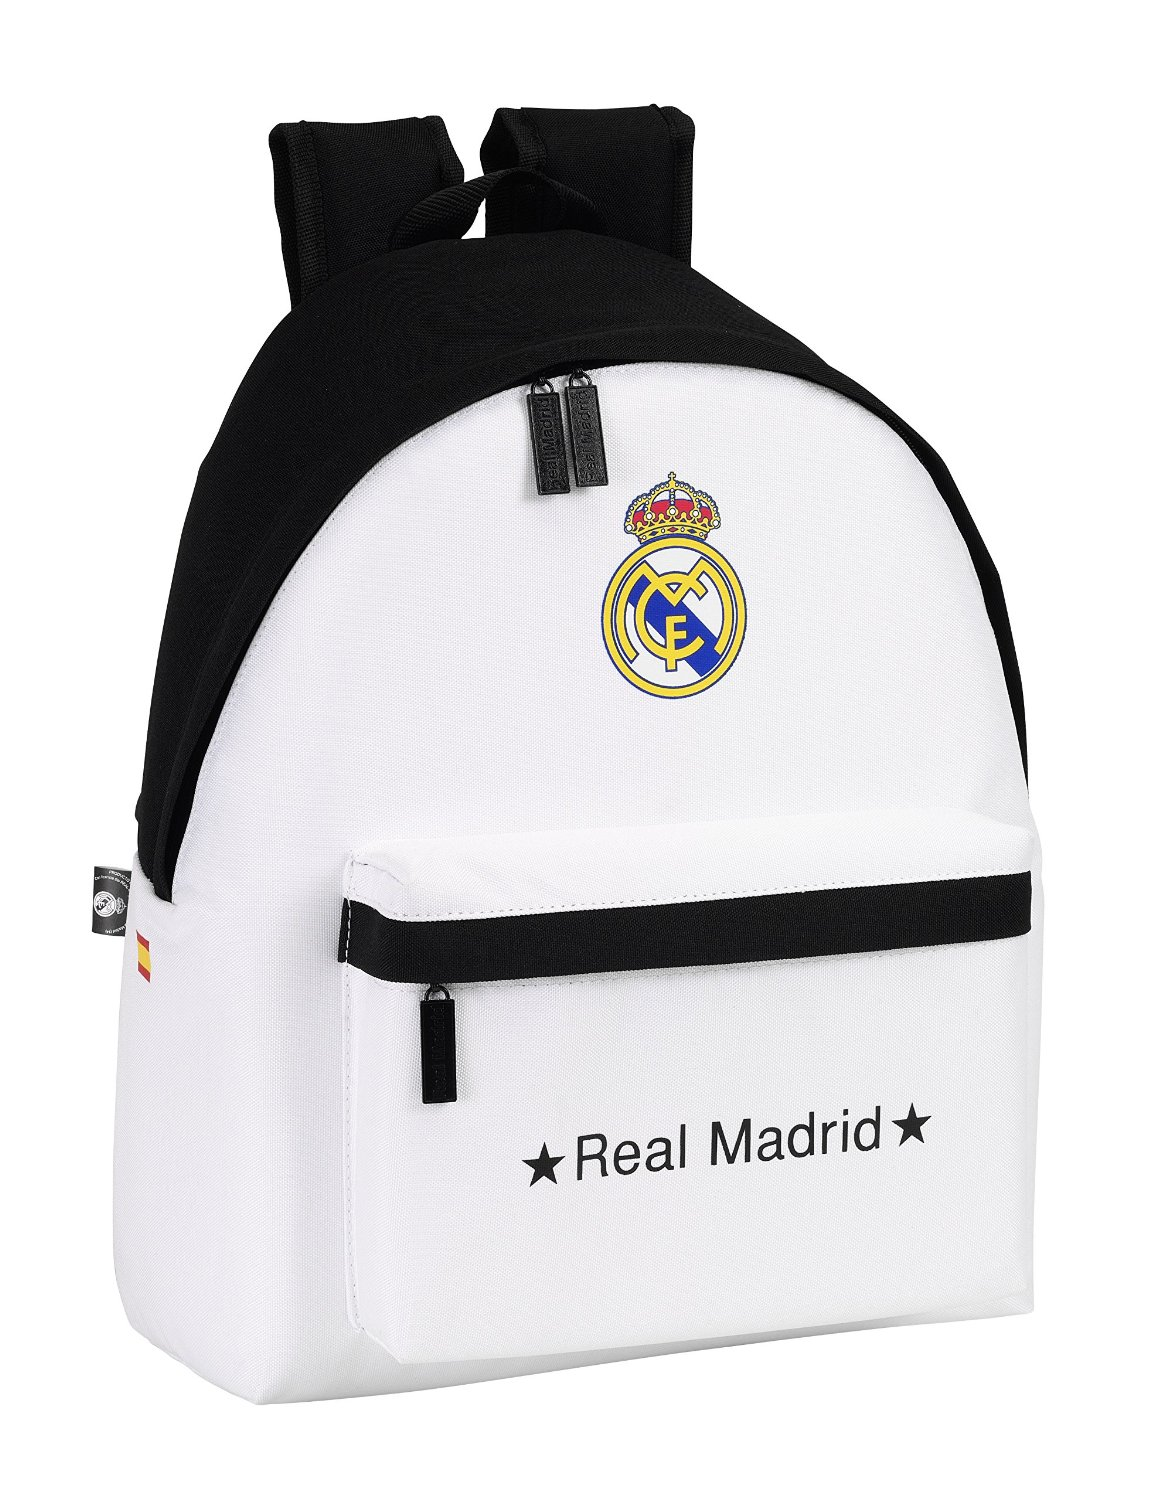 OFERTA Mochila Real Madrid color blanco negro